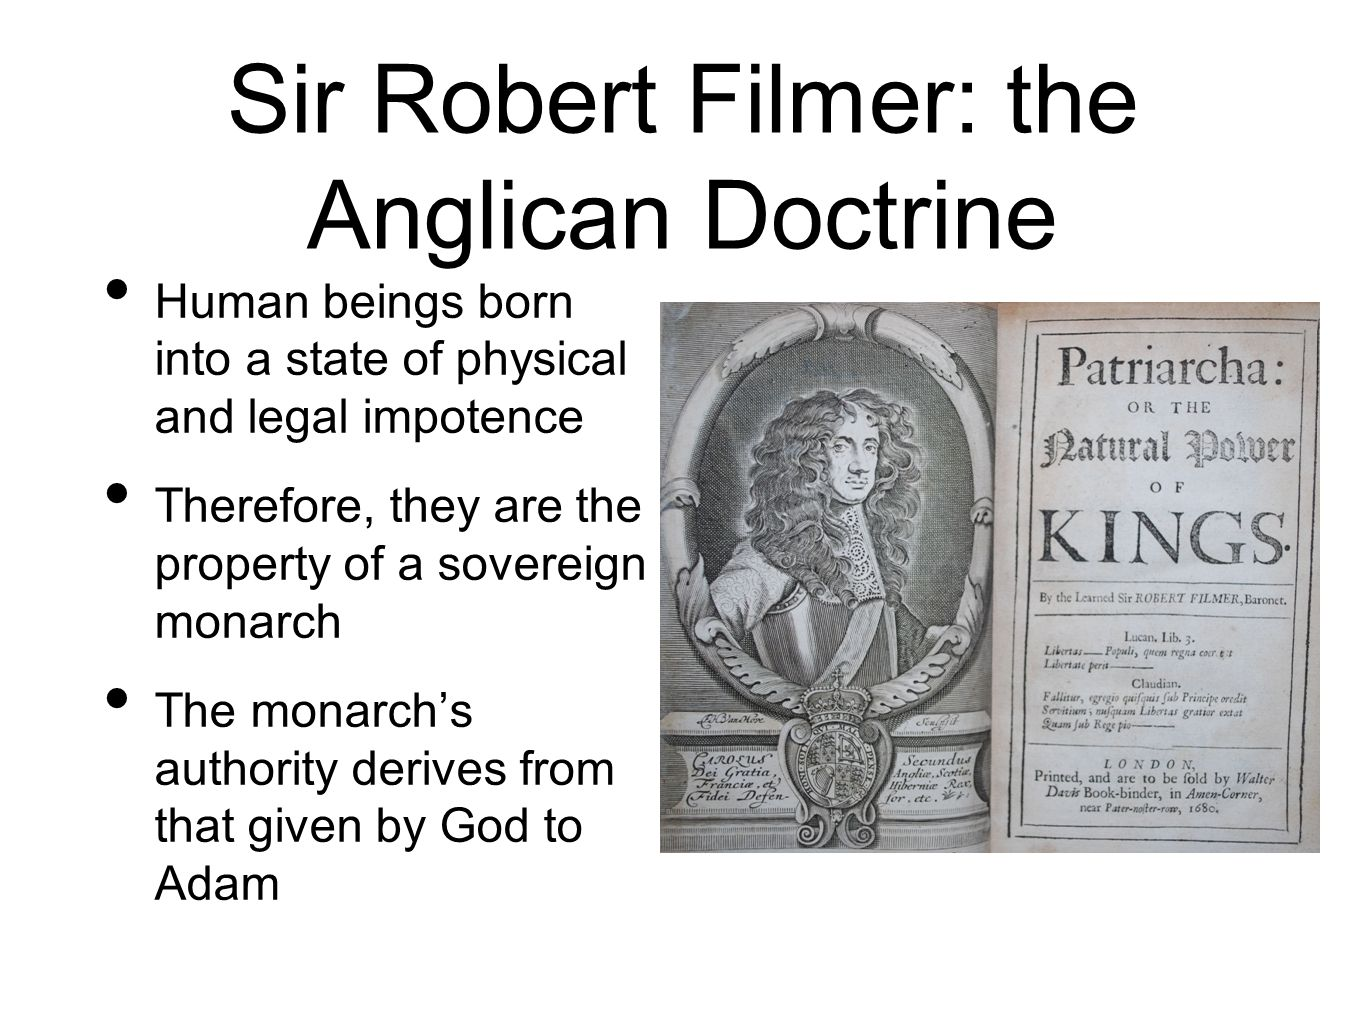 Sir Robert Filmer: the Anglican Doctrine Human beings born into a state of physical and legal impotence Therefore, they are the property of a sovereig